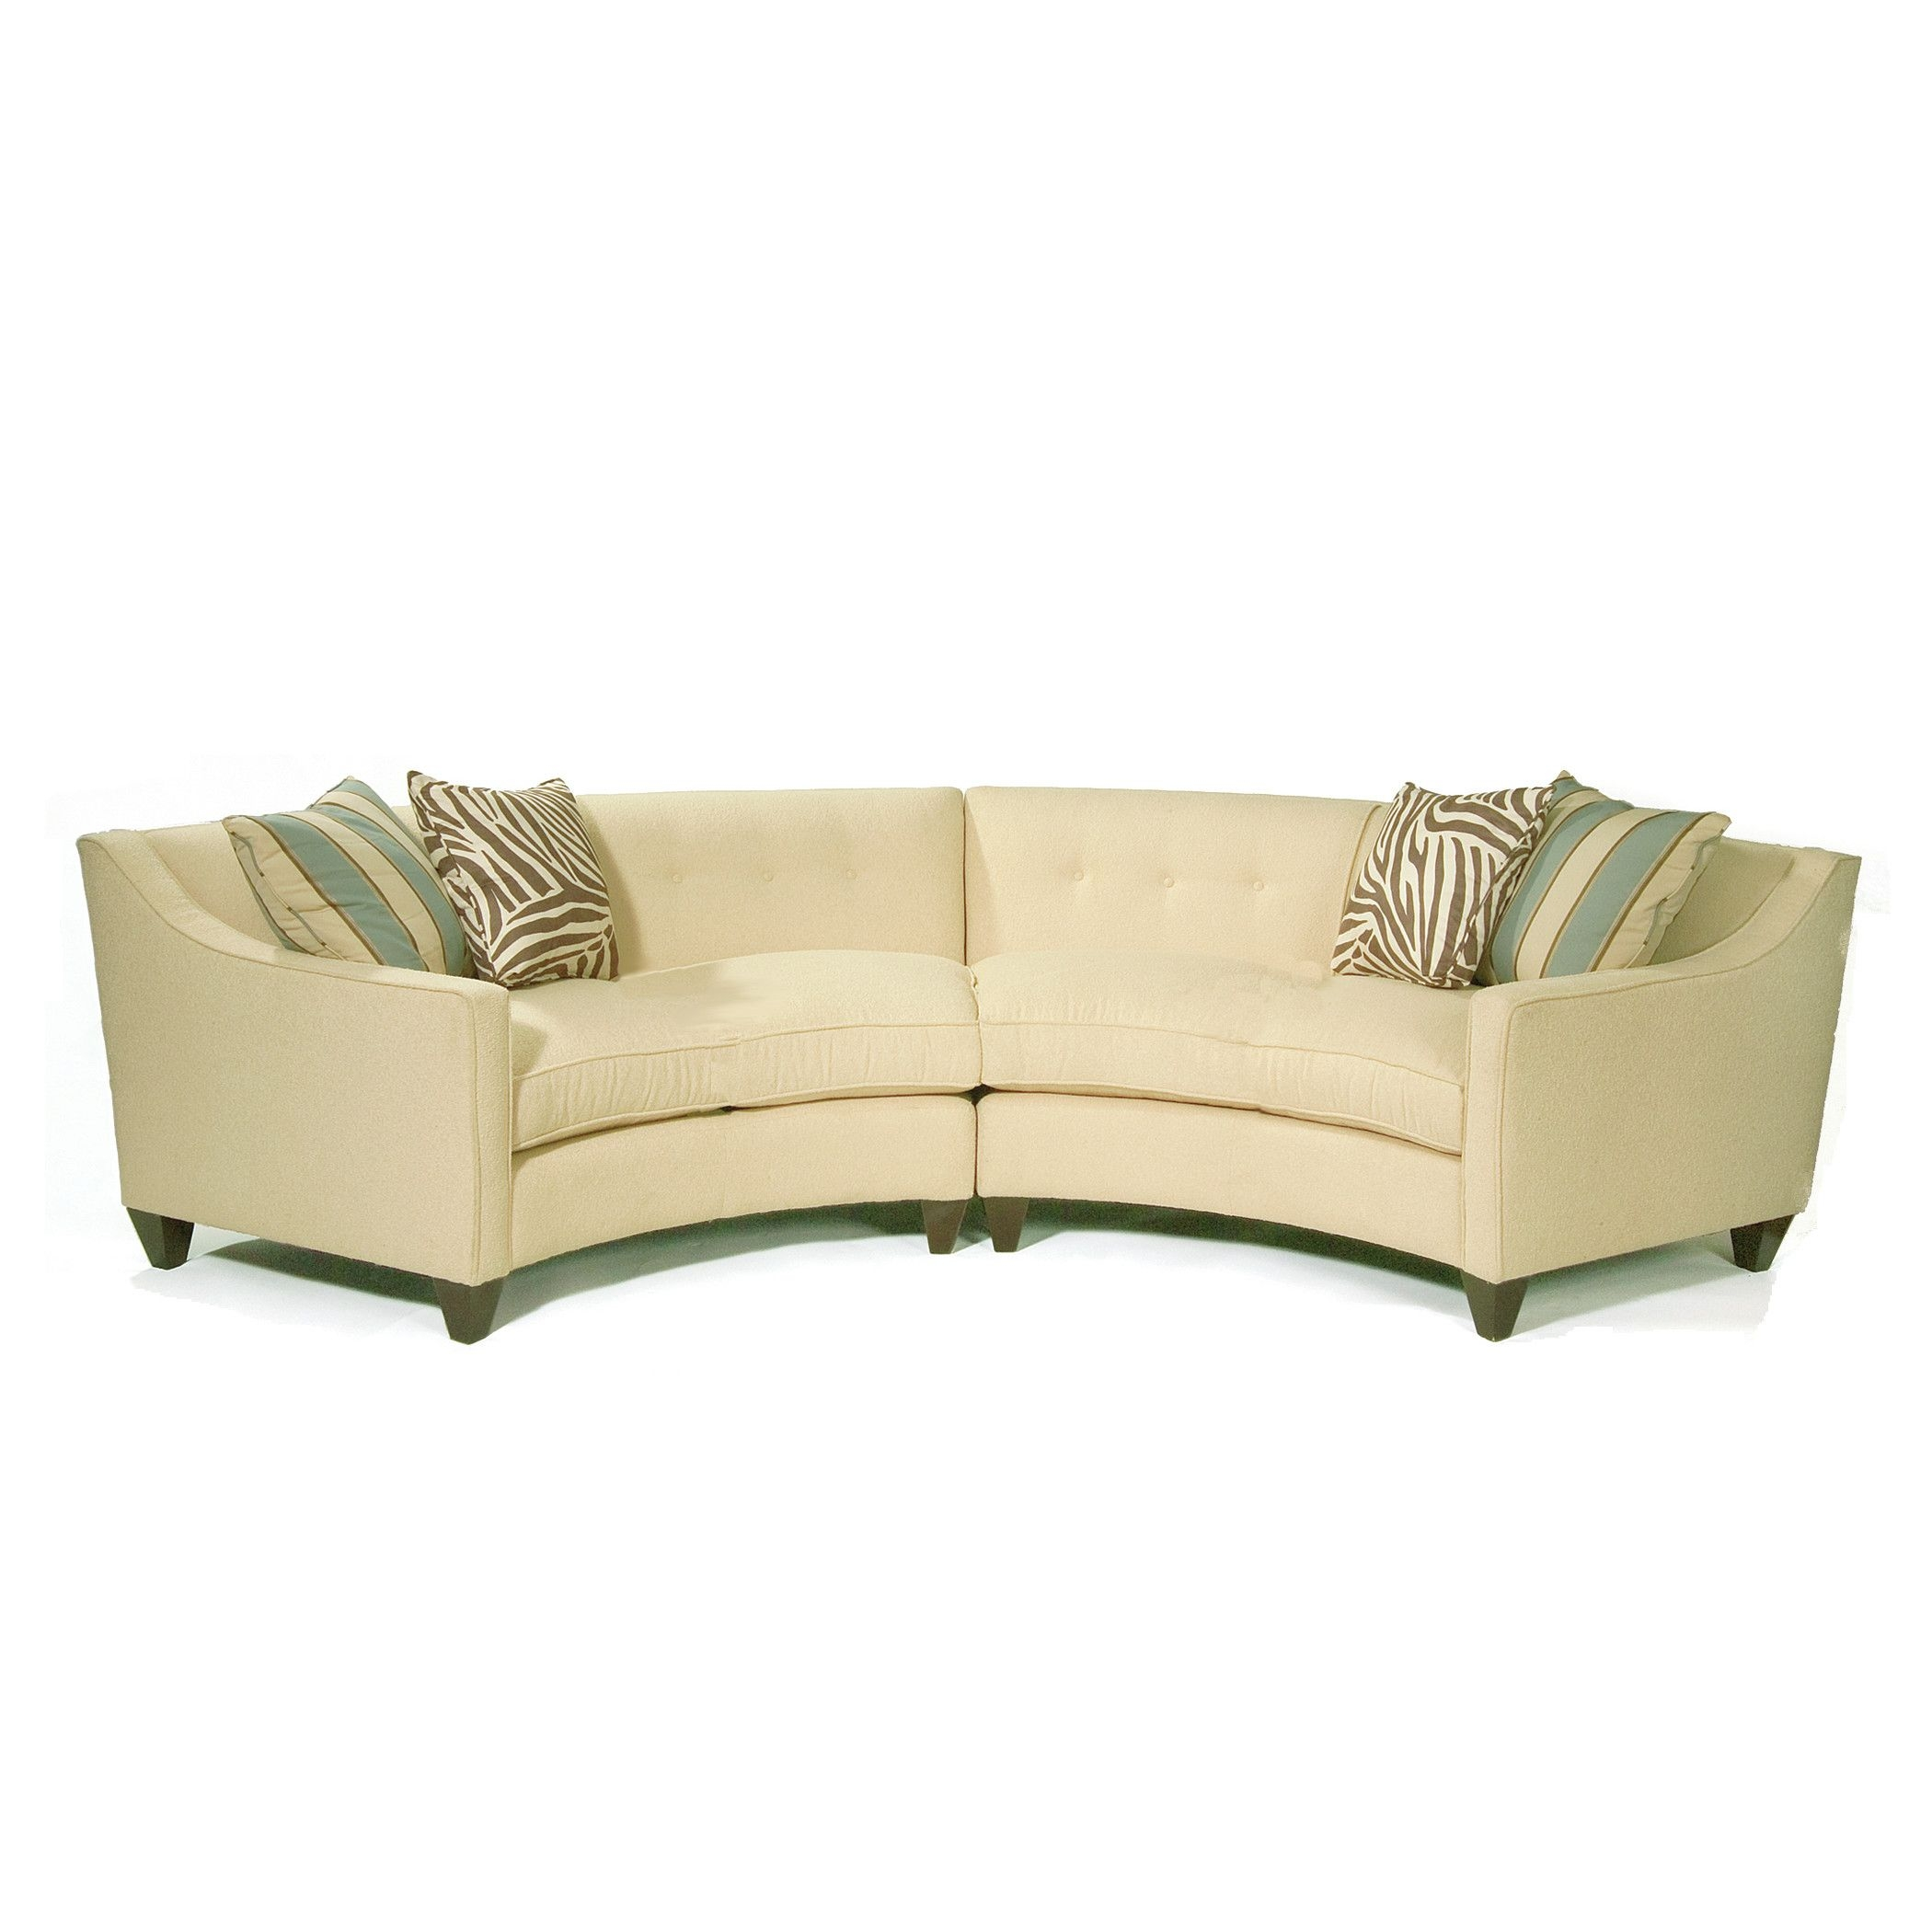 Classic comfort curved sectional in milan vanilla